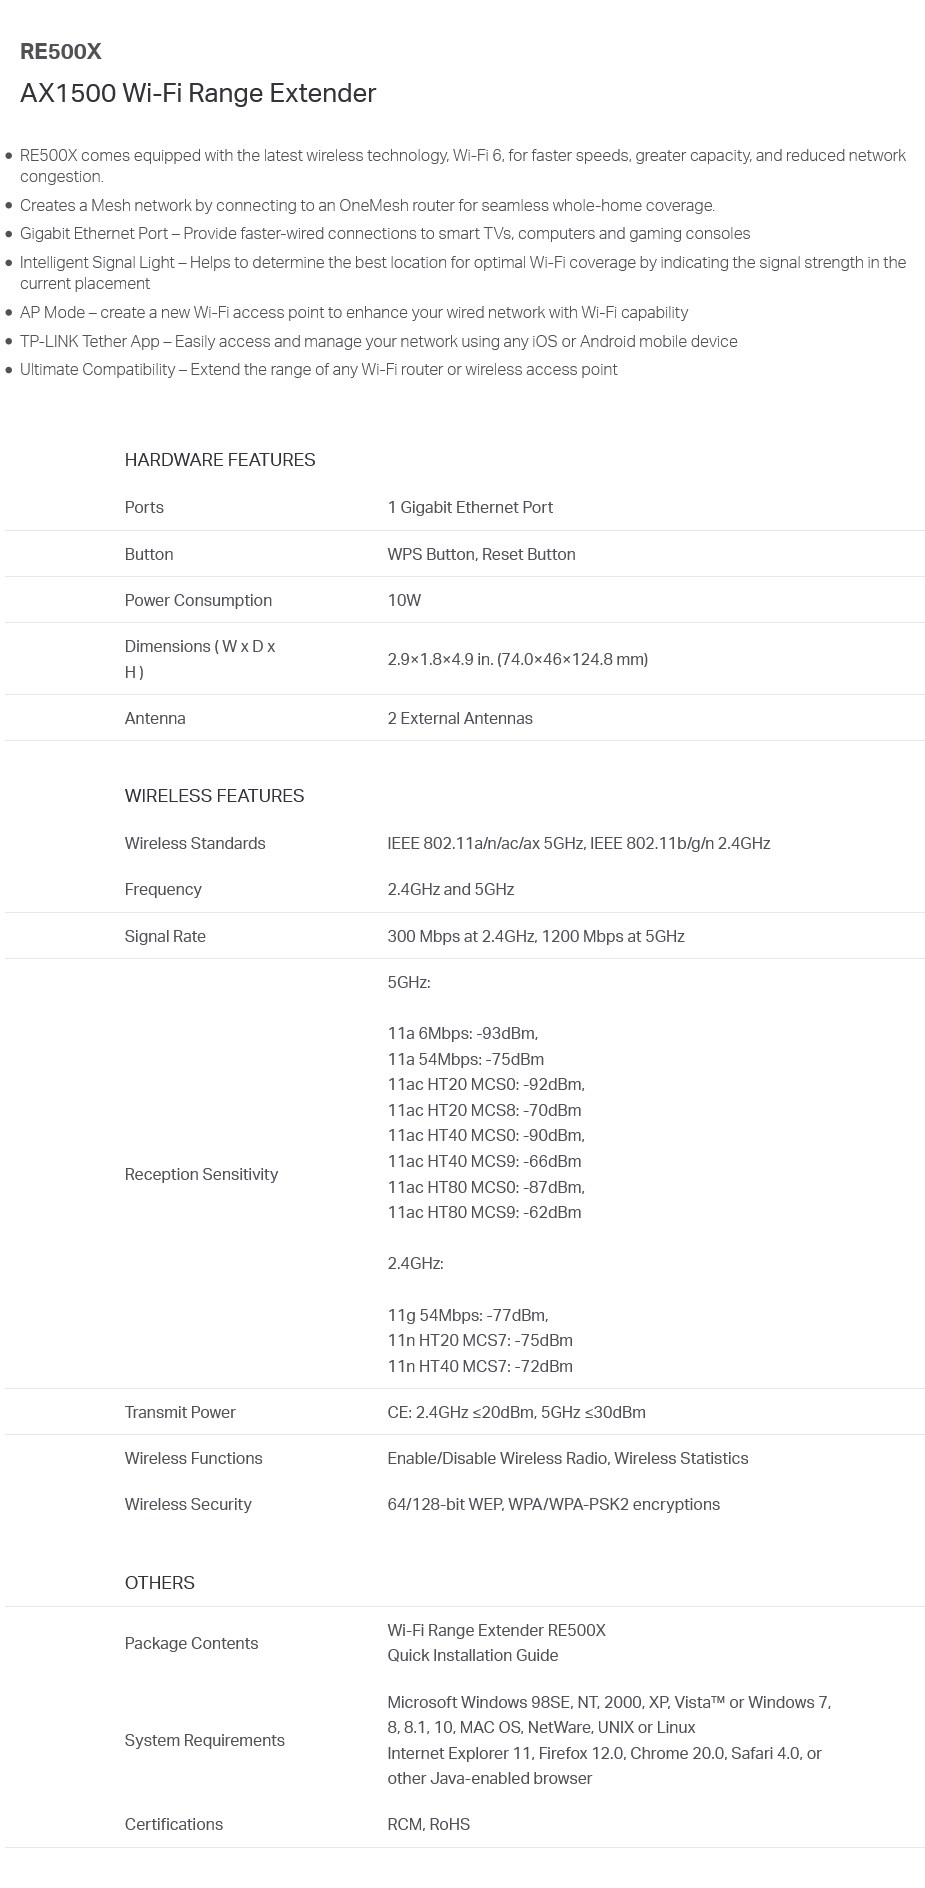 A large marketing image providing additional information about the product TP-LINK RE500X AX1500 WiFi Range Extender - Additional alt info not provided